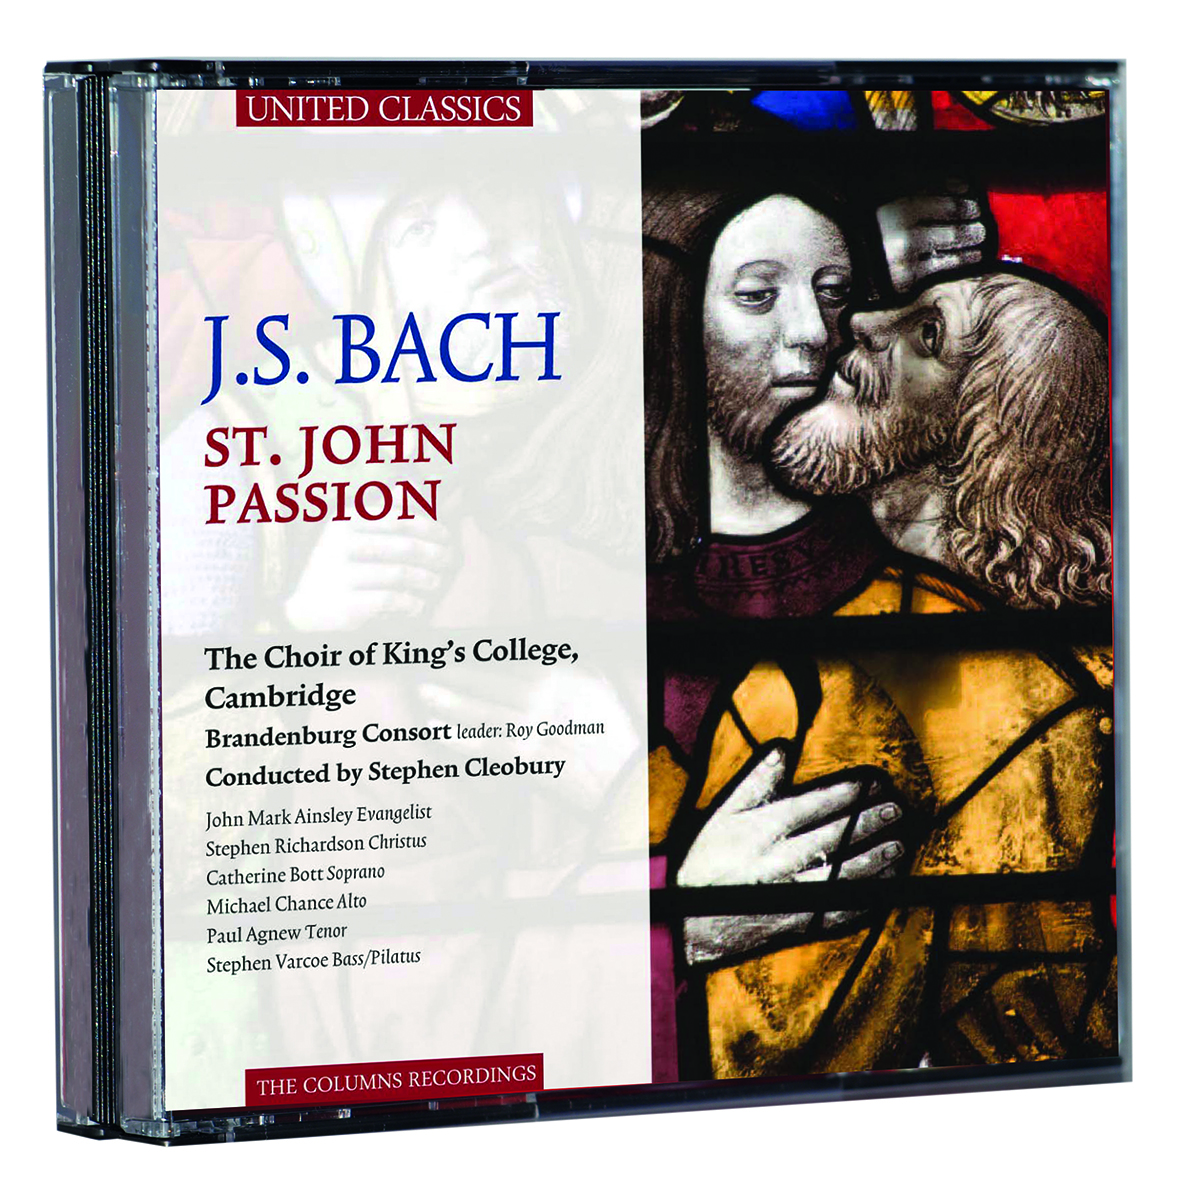 J. S. Bach - Johannespassion - CD, statt 19,95